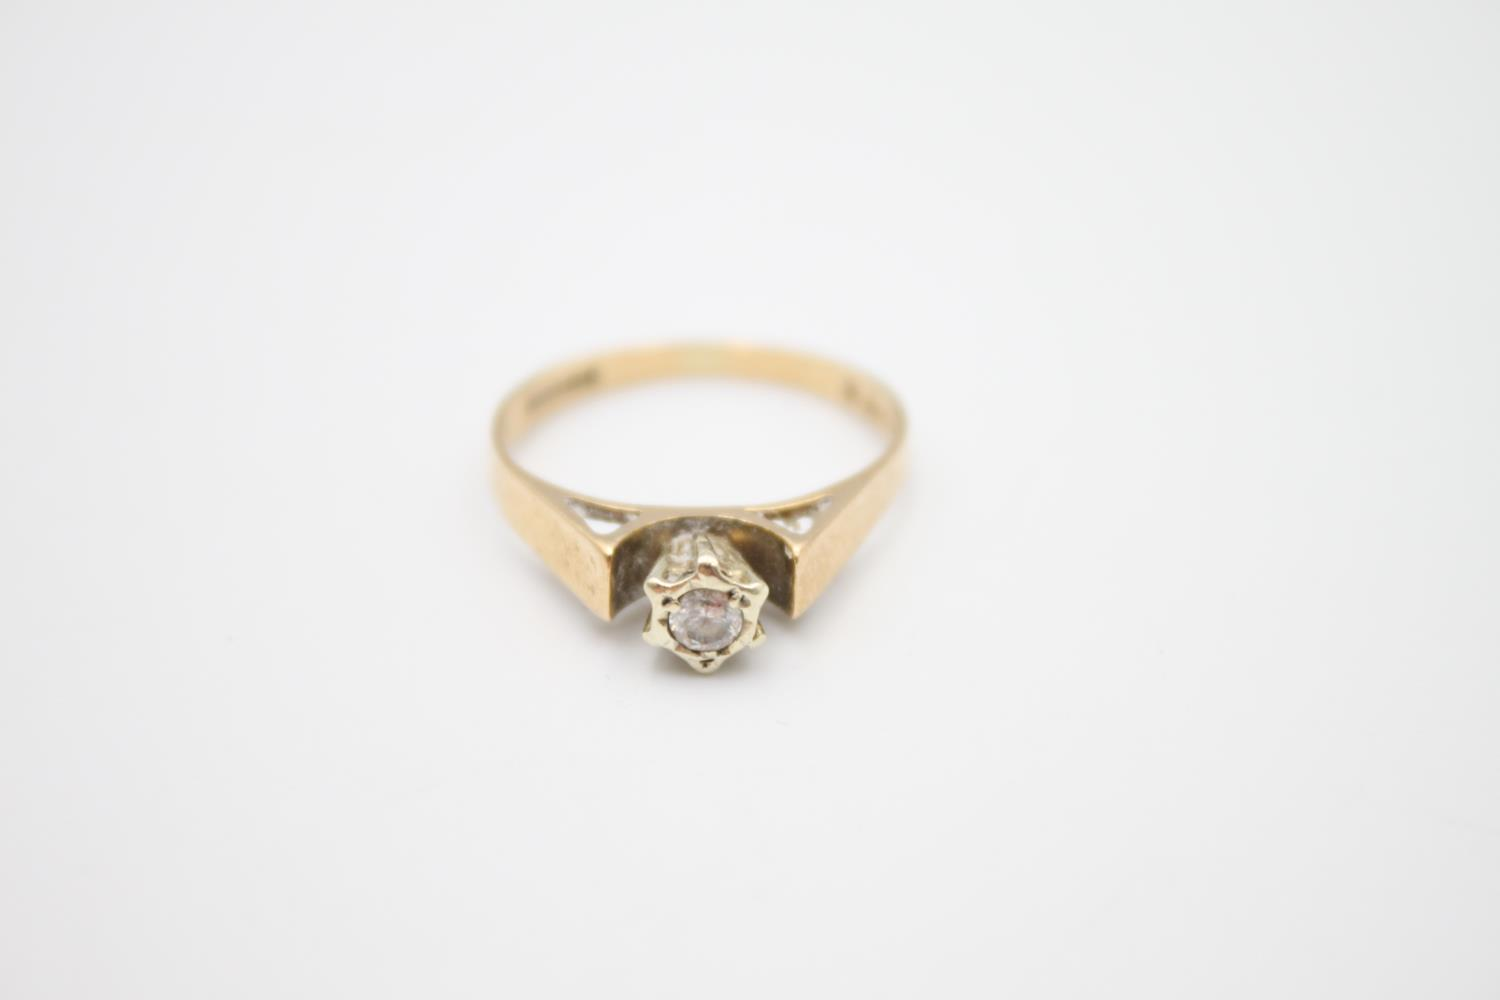 vintage 9ct gold diamond solitaire ring 1.8g Size M